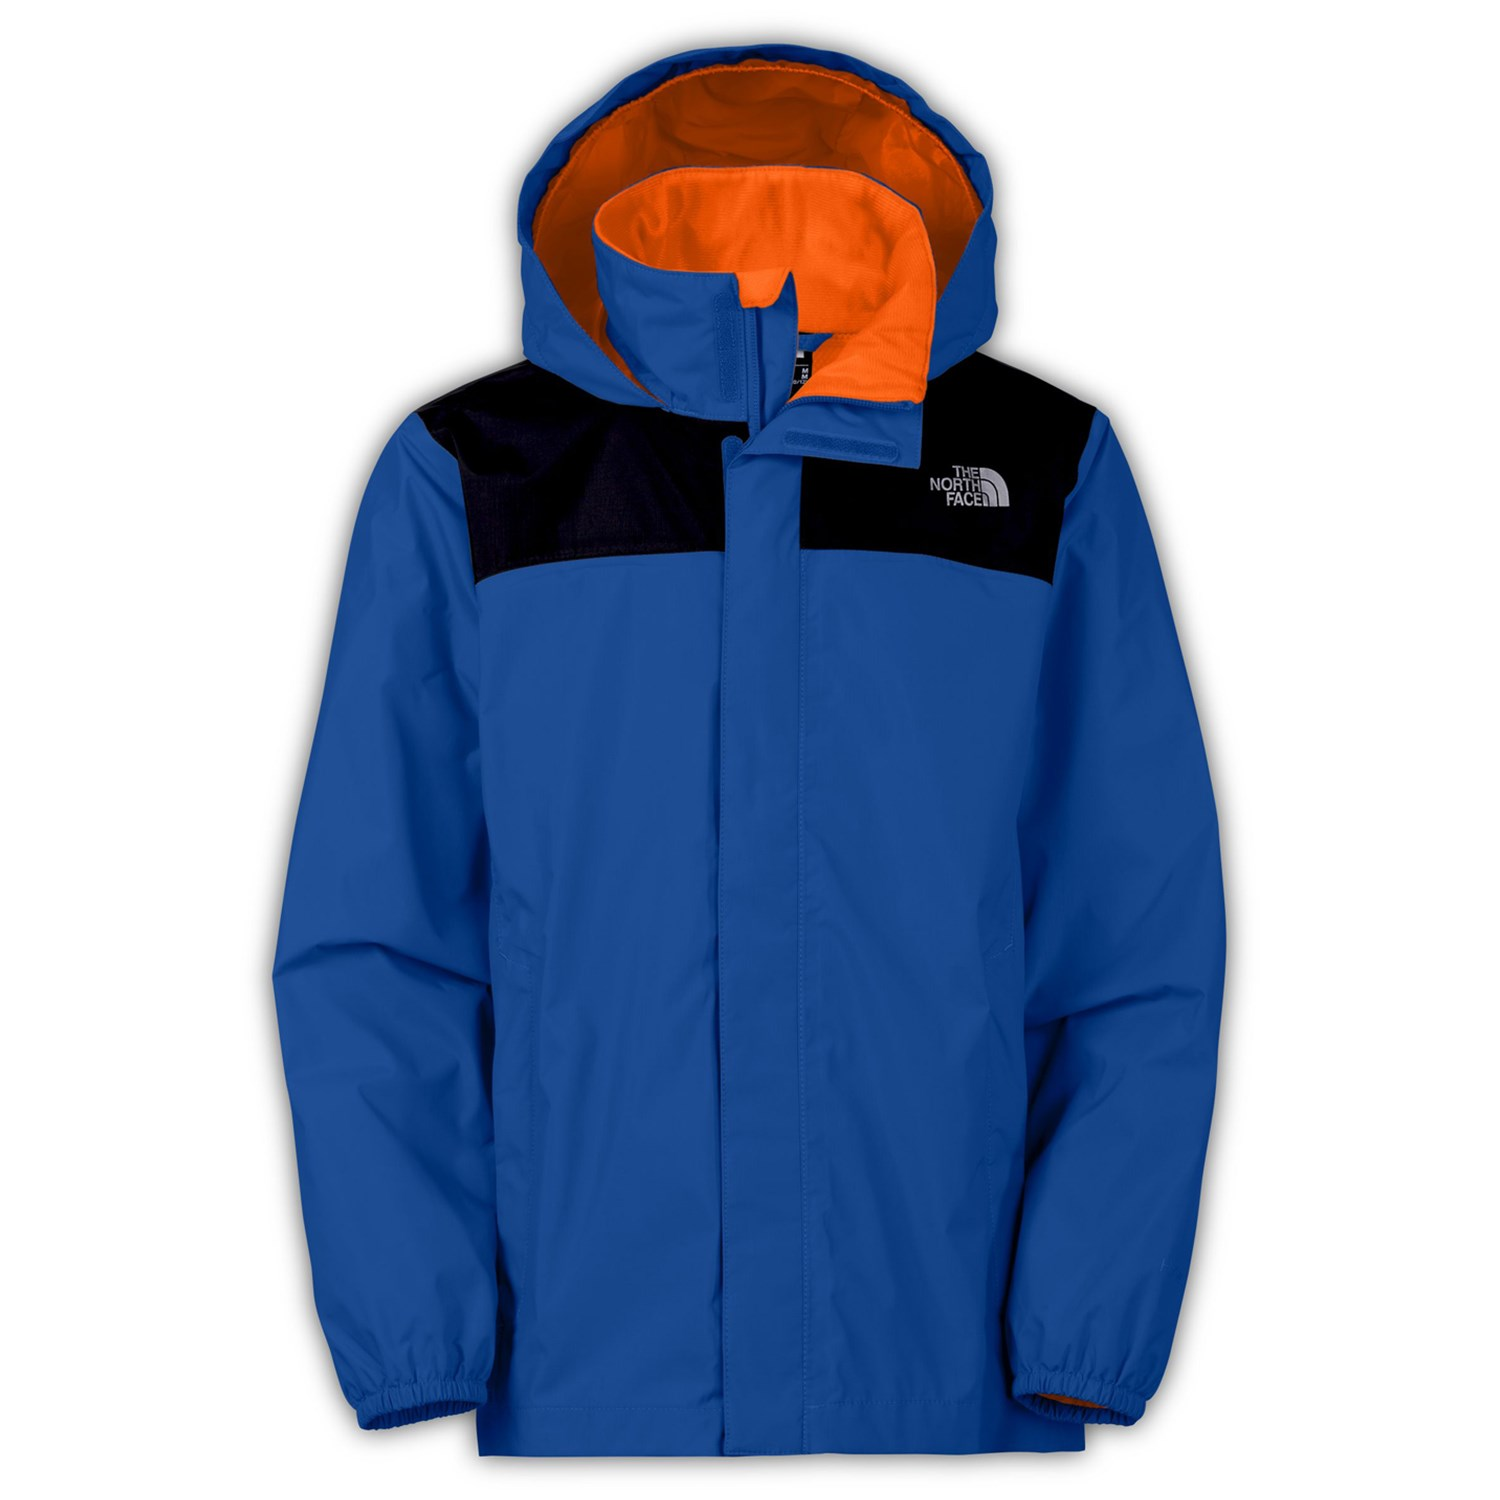 881bcefad31e The North Face Resolve Reflective Jacket - Boy s